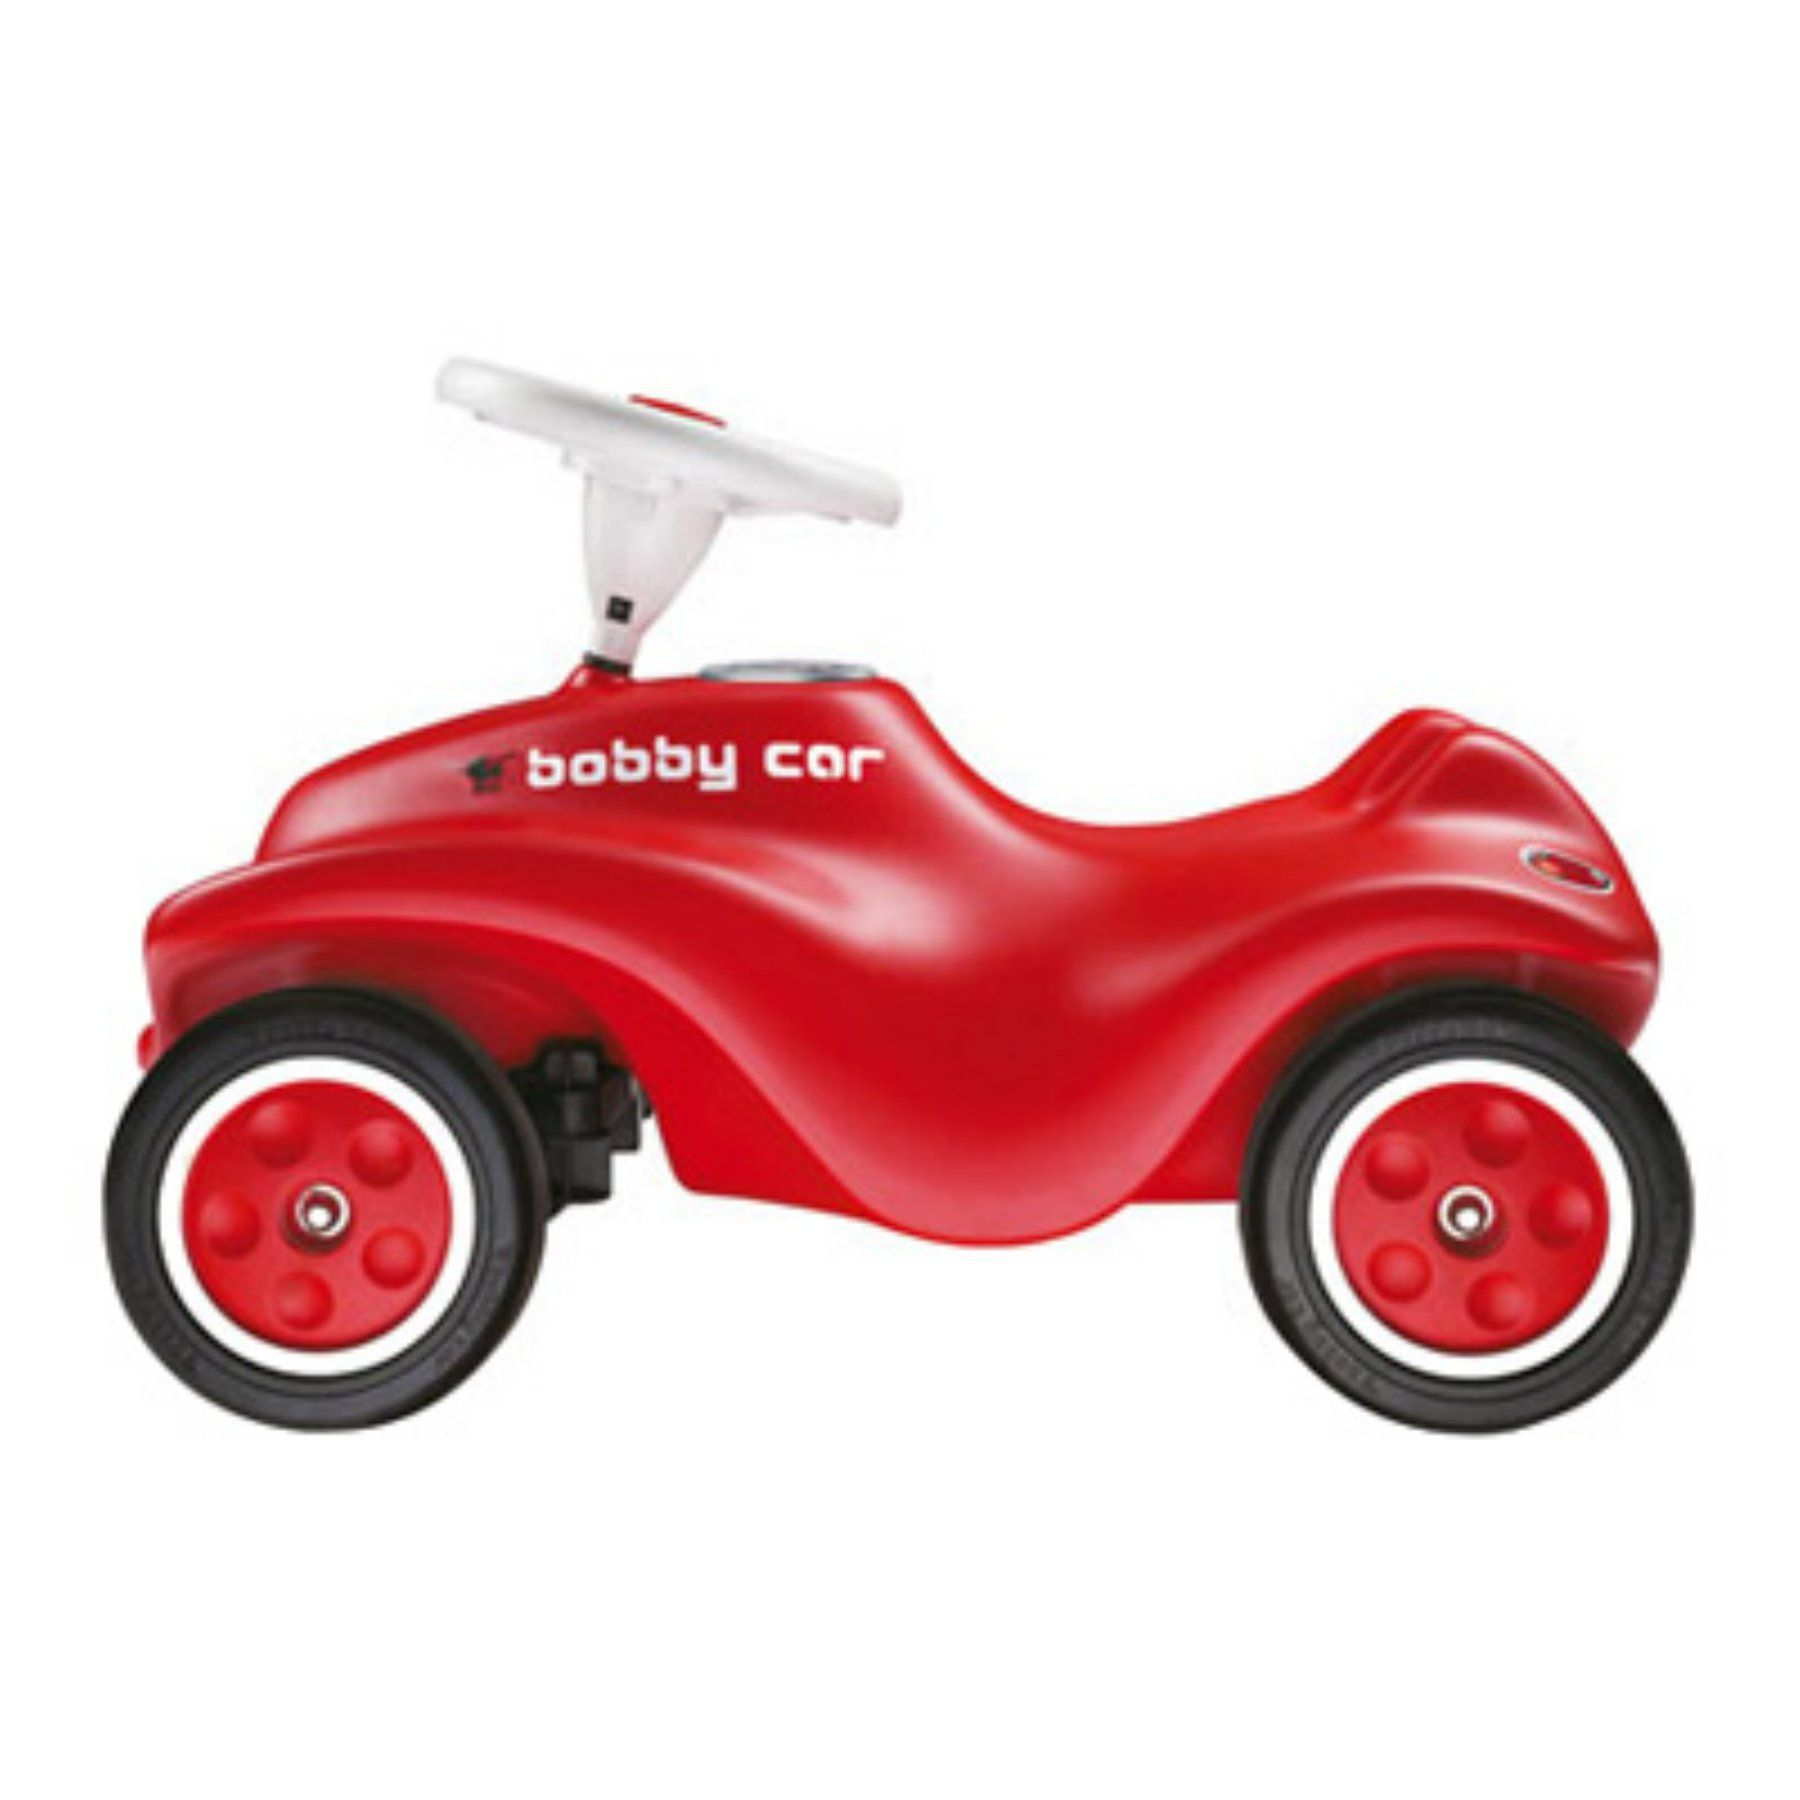 Toys car images  Big Bobby Car Riding Push Toy  Red  BIG  Push toys and Products